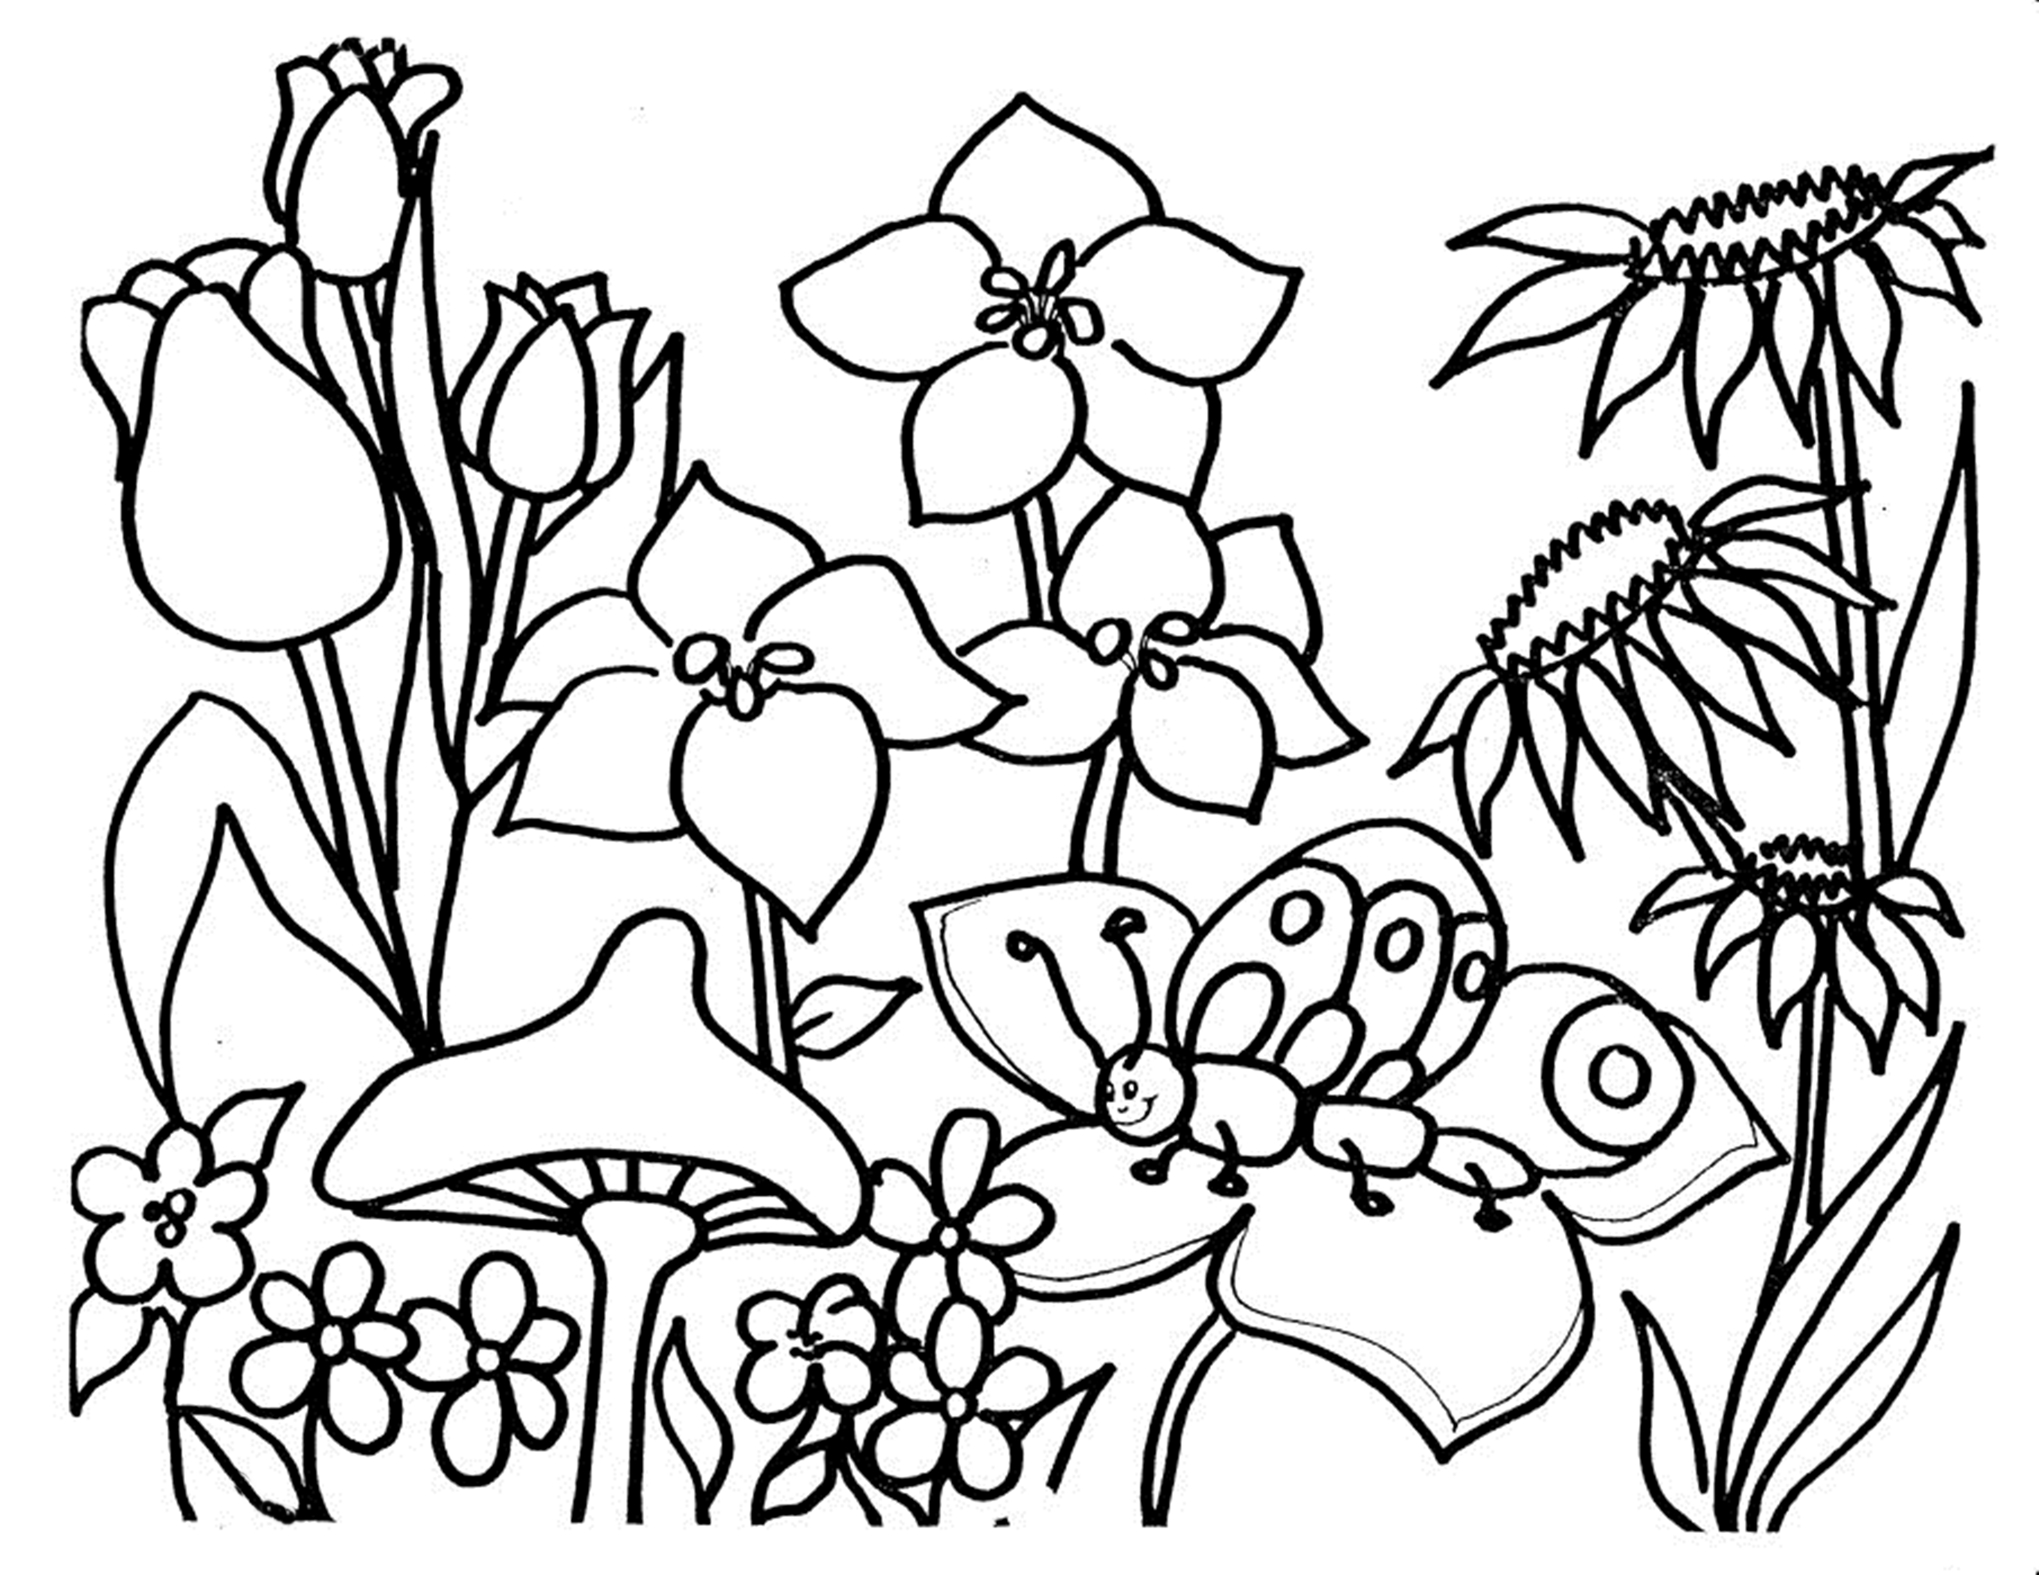 flower coloring pages for kids free printable flower coloring pages for kids best coloring flower kids for pages